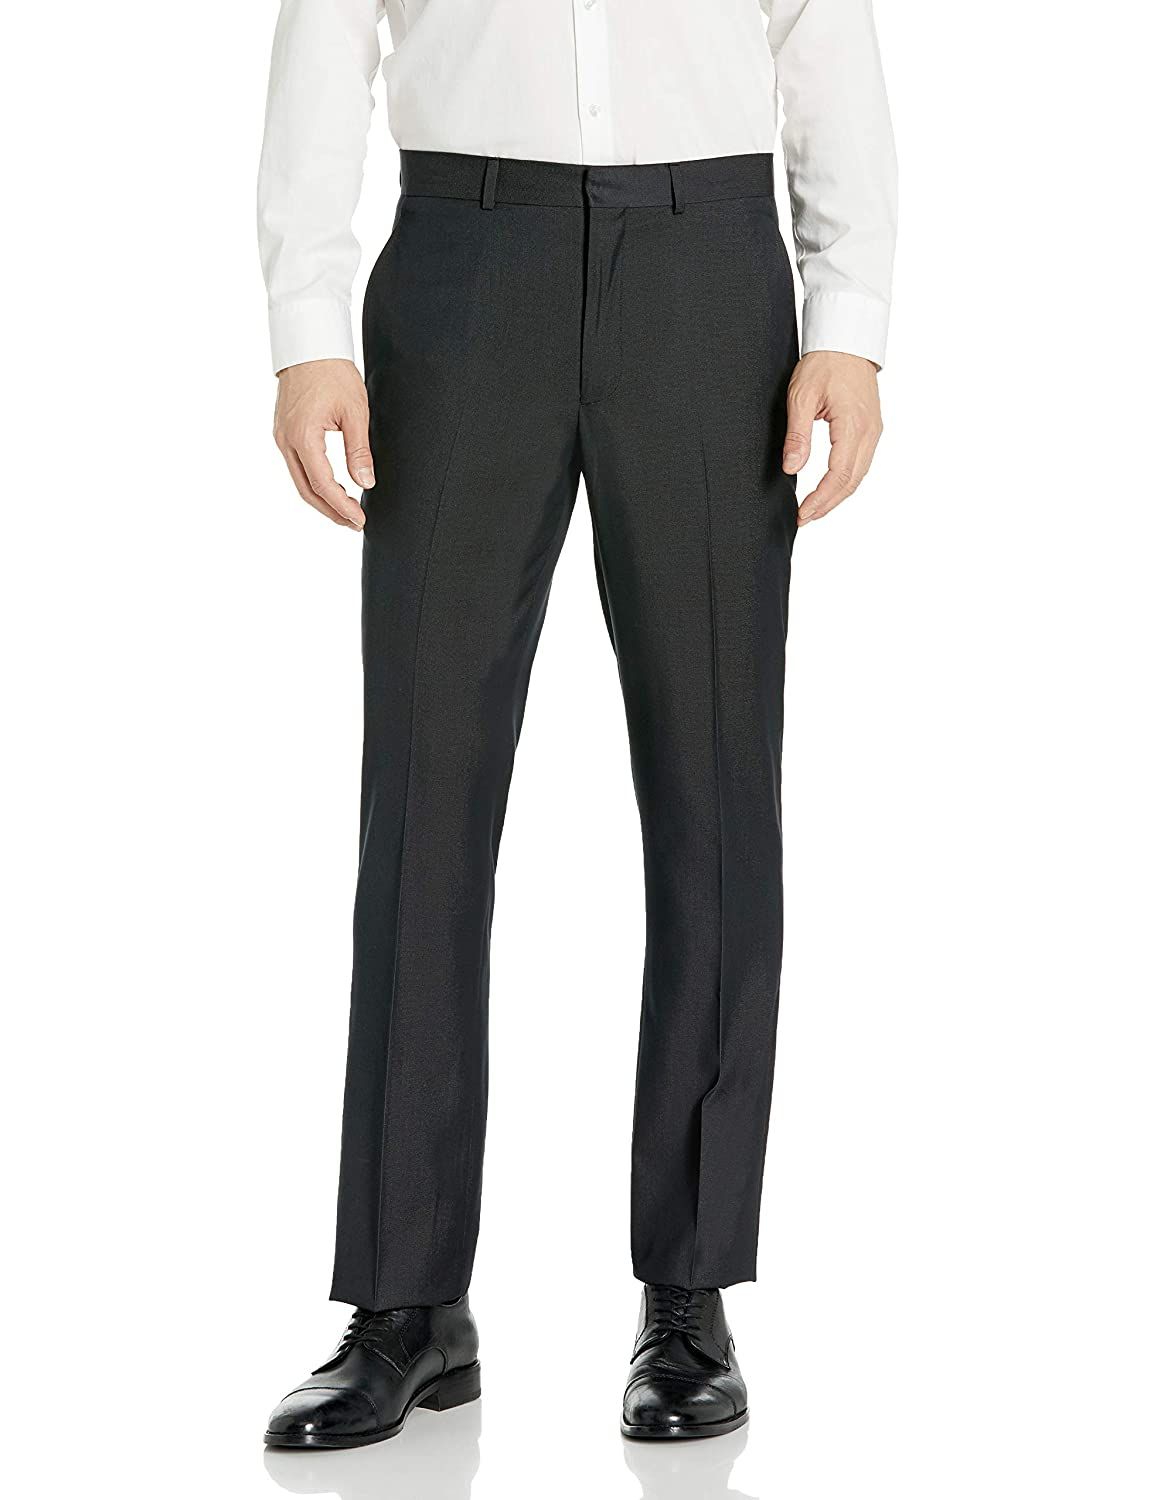 Blazer, Pant, and Vest Kenneth Cole REACTION Slim Fit Suit Separates